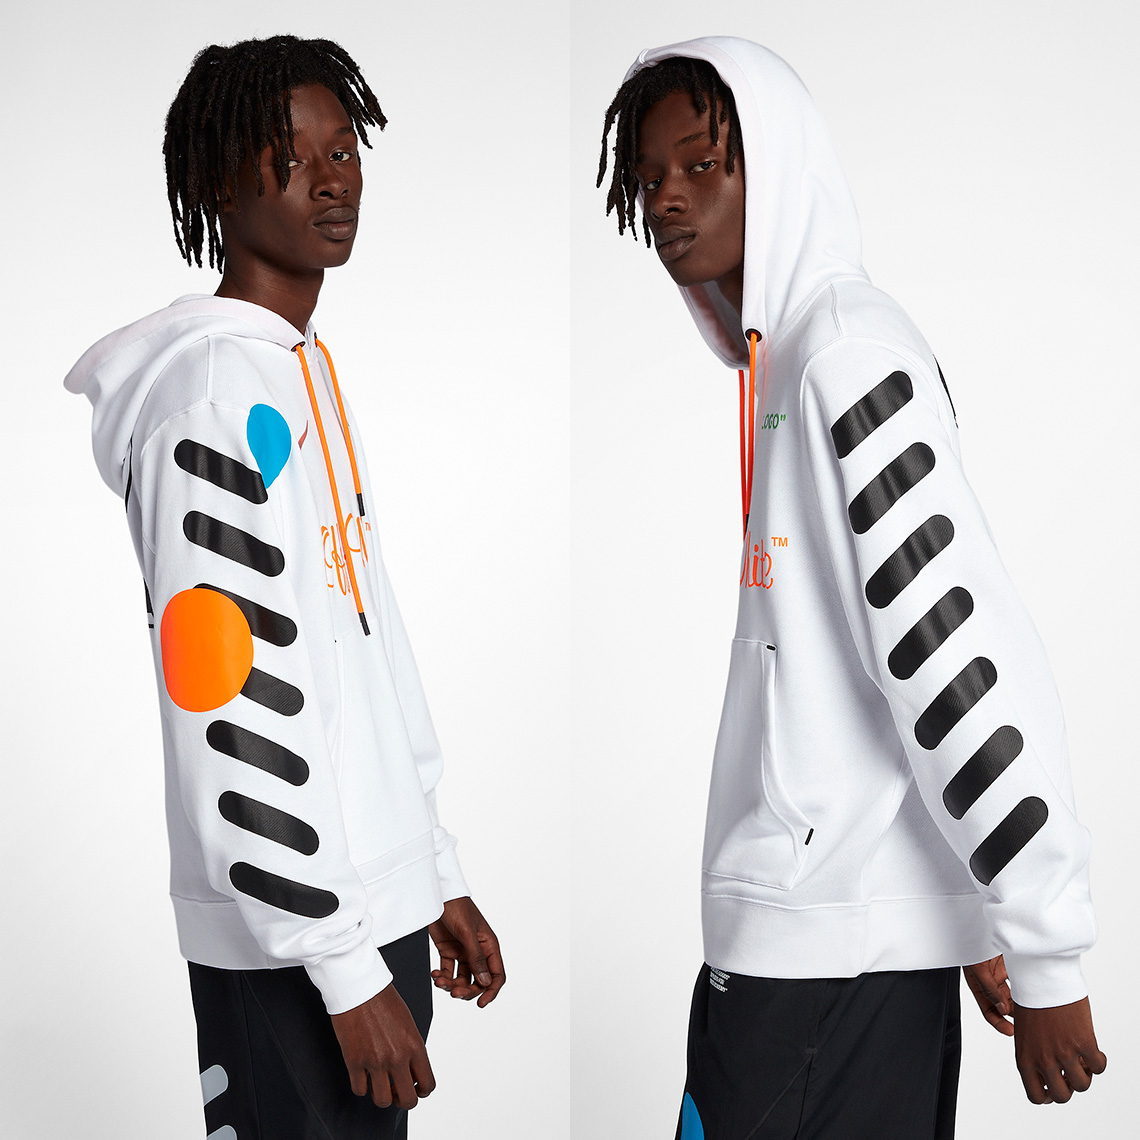 la qualité d'abord nouveau style de luxuriant dans la conception Collection Off-White x Nike «Football Mon Amour»